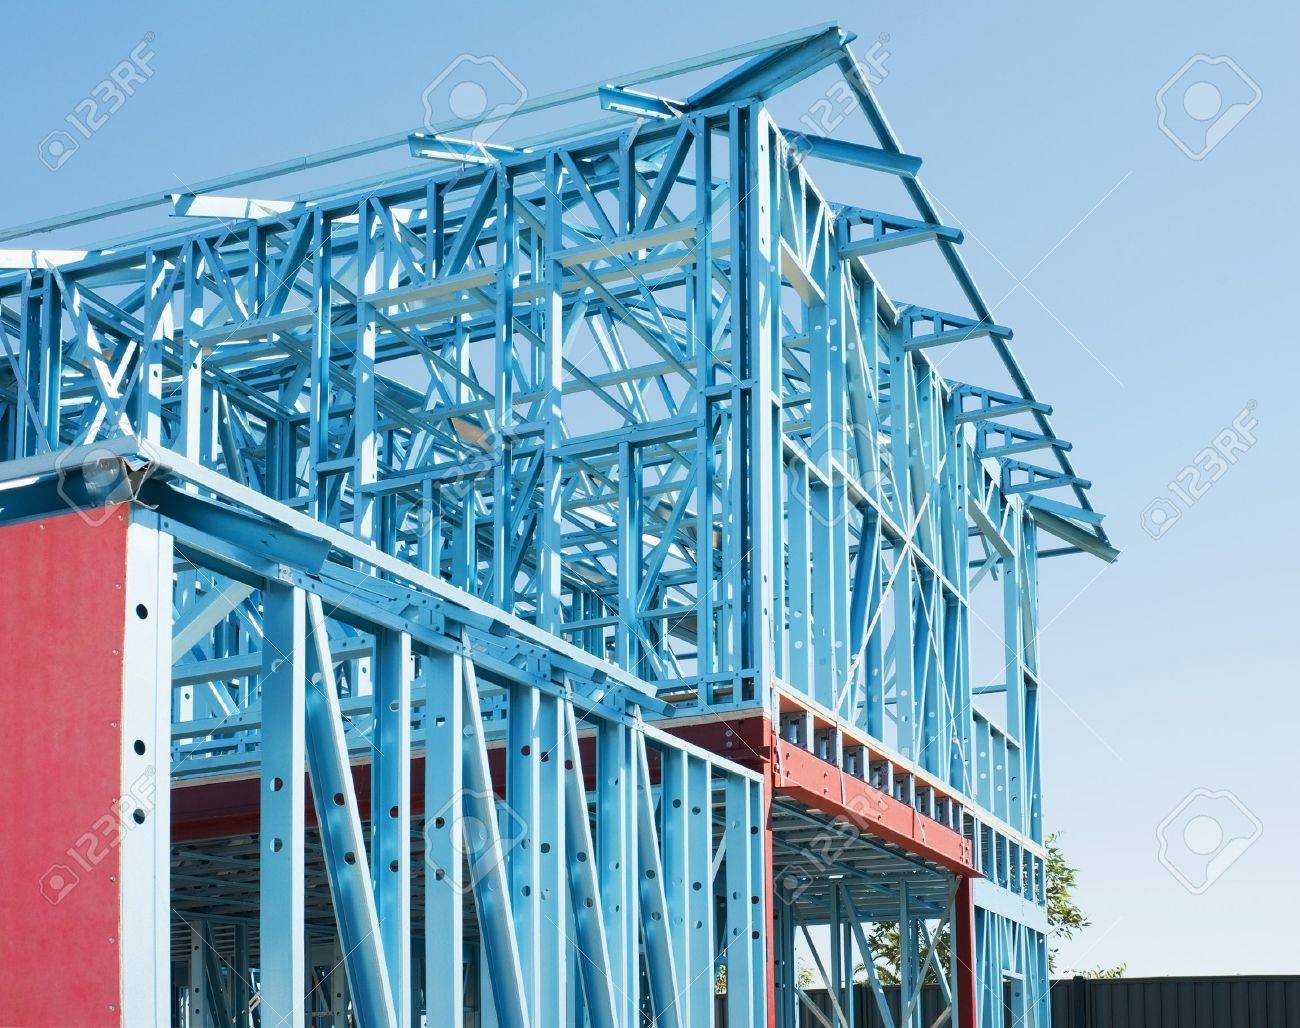 New residential construction home metal framing against a blue sky - 18465156